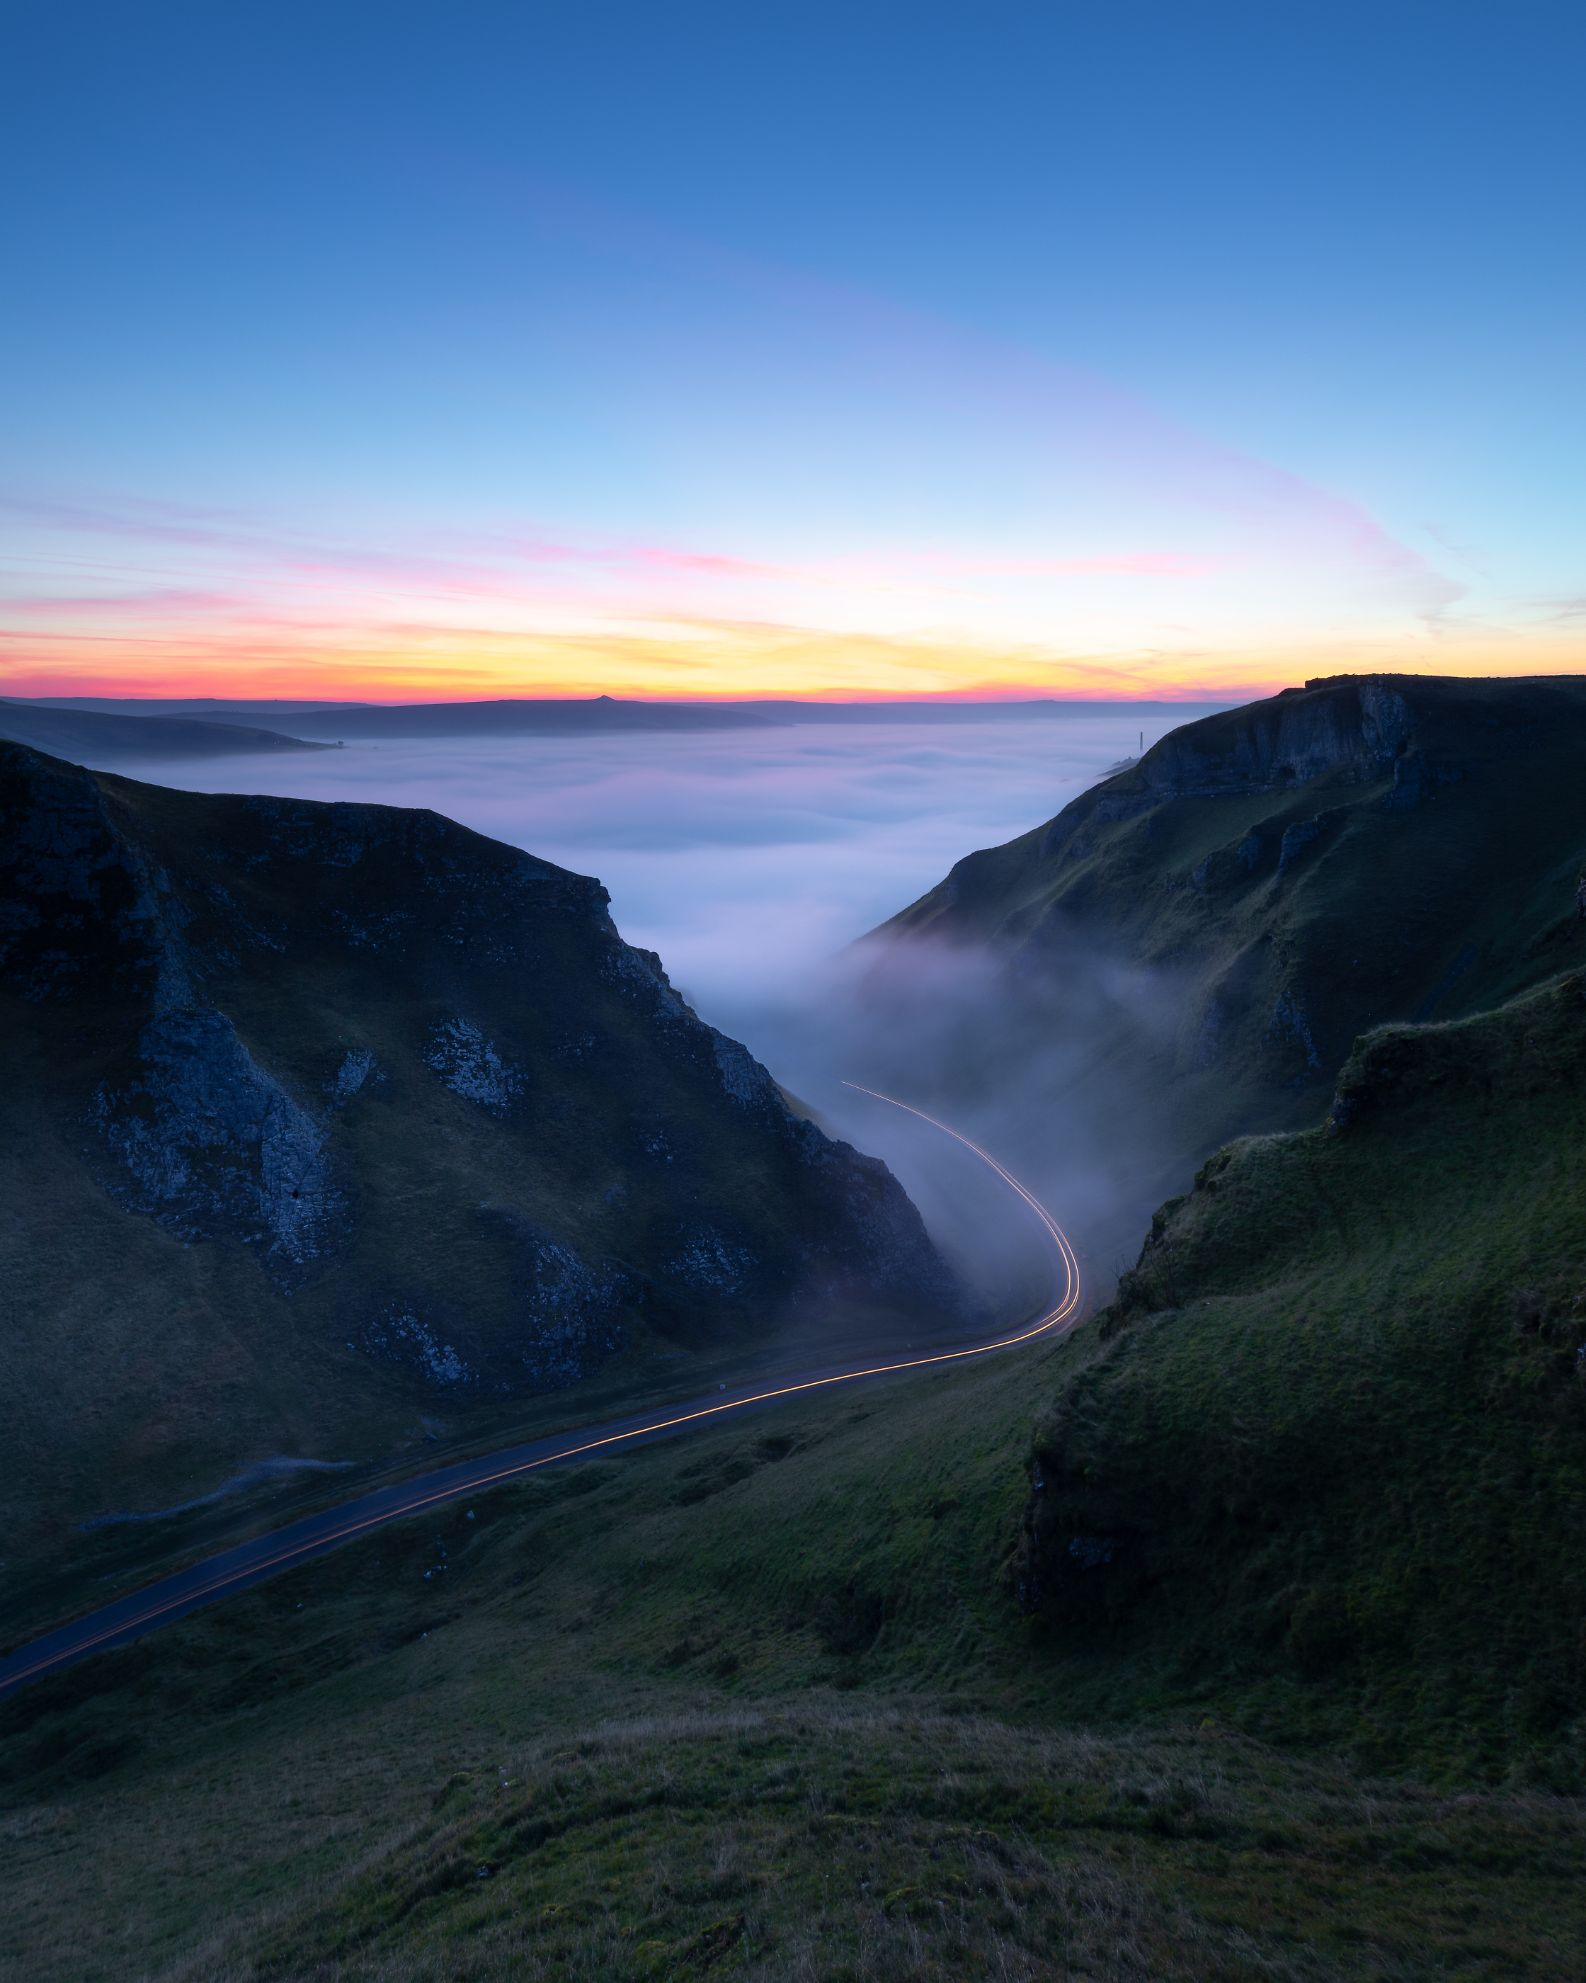 A colourful sunrise at Winnats Pass with a cloud inversion developing early on. A long exposure helped to capture the light trails of an emerging car